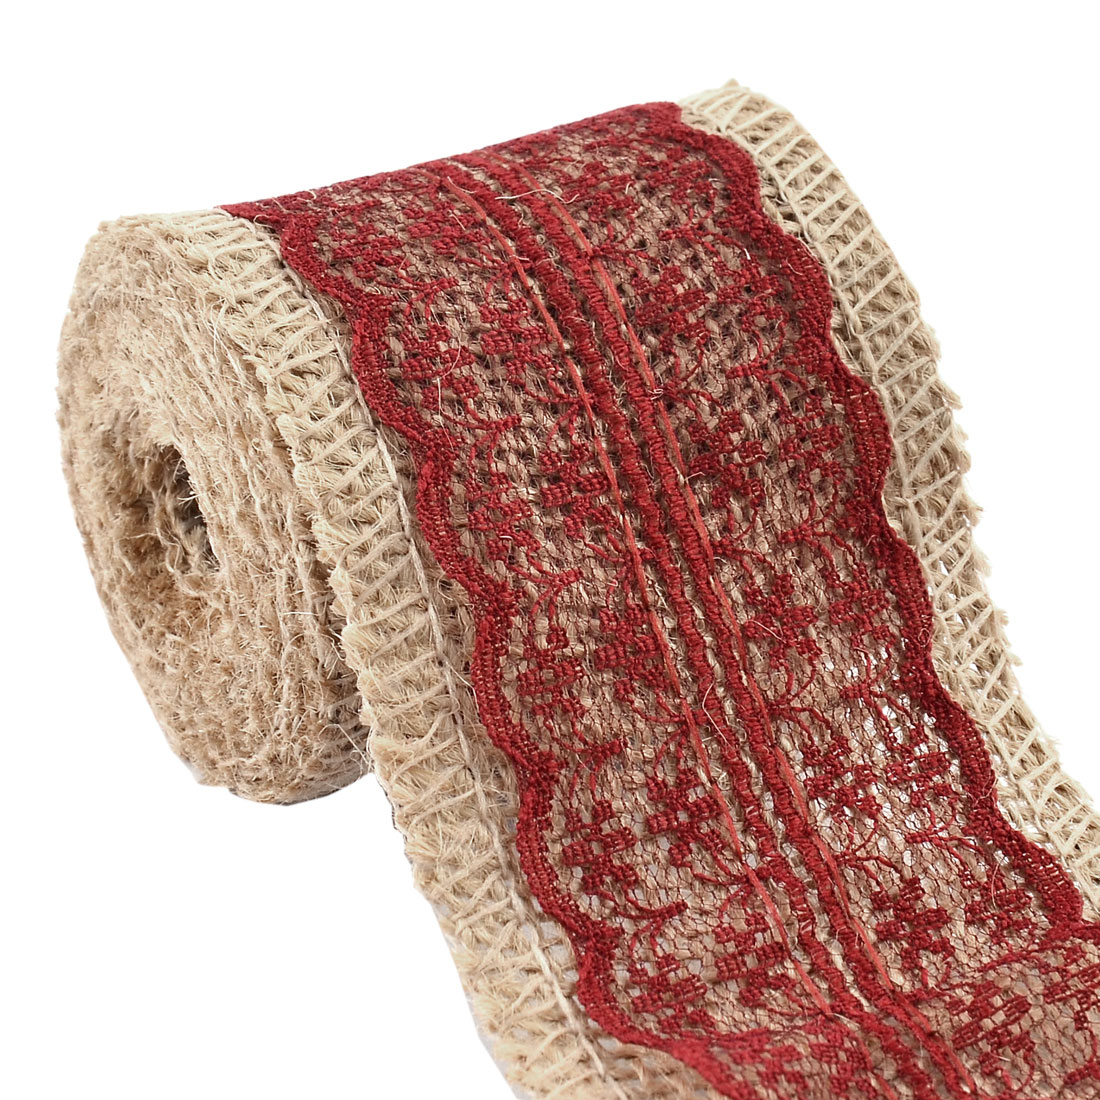 Wedding Burlap Strap Art Crafts Lace Ribbon Roll Trim Edge Burgundy 2.2 Yards